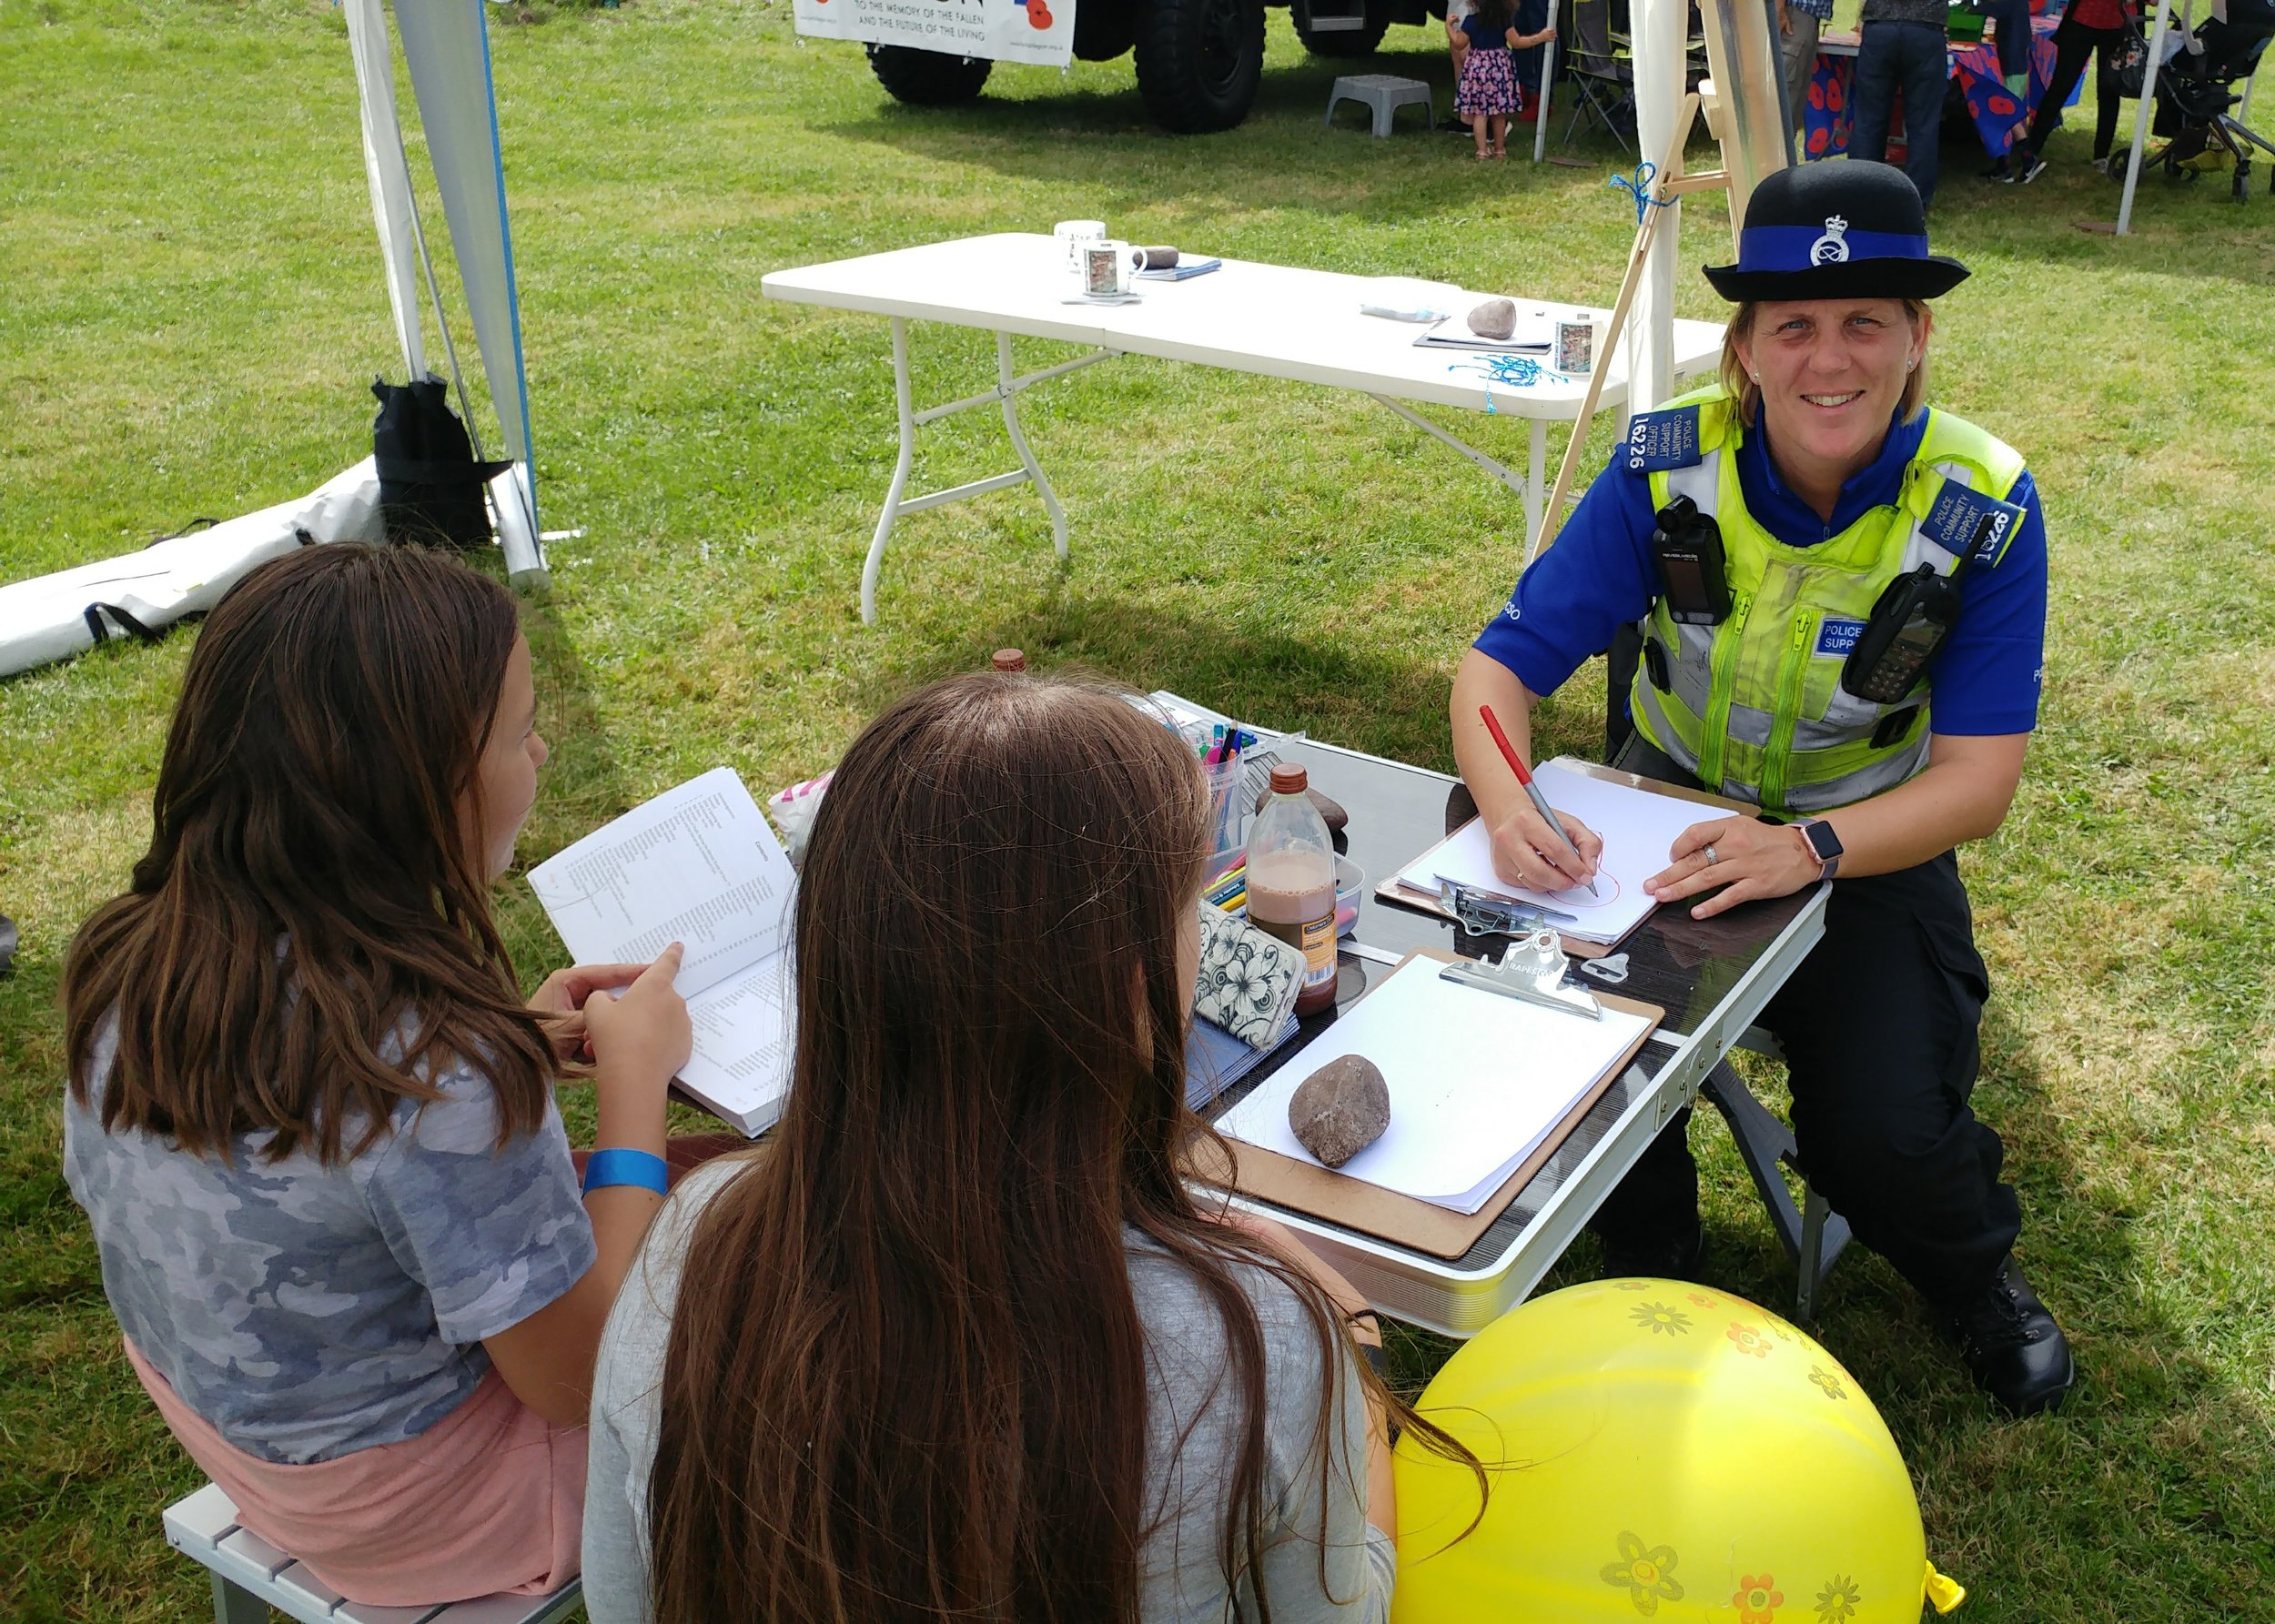 A good sport! PCSO Knight from Longton Police Station joining in the fun at Hanford Park